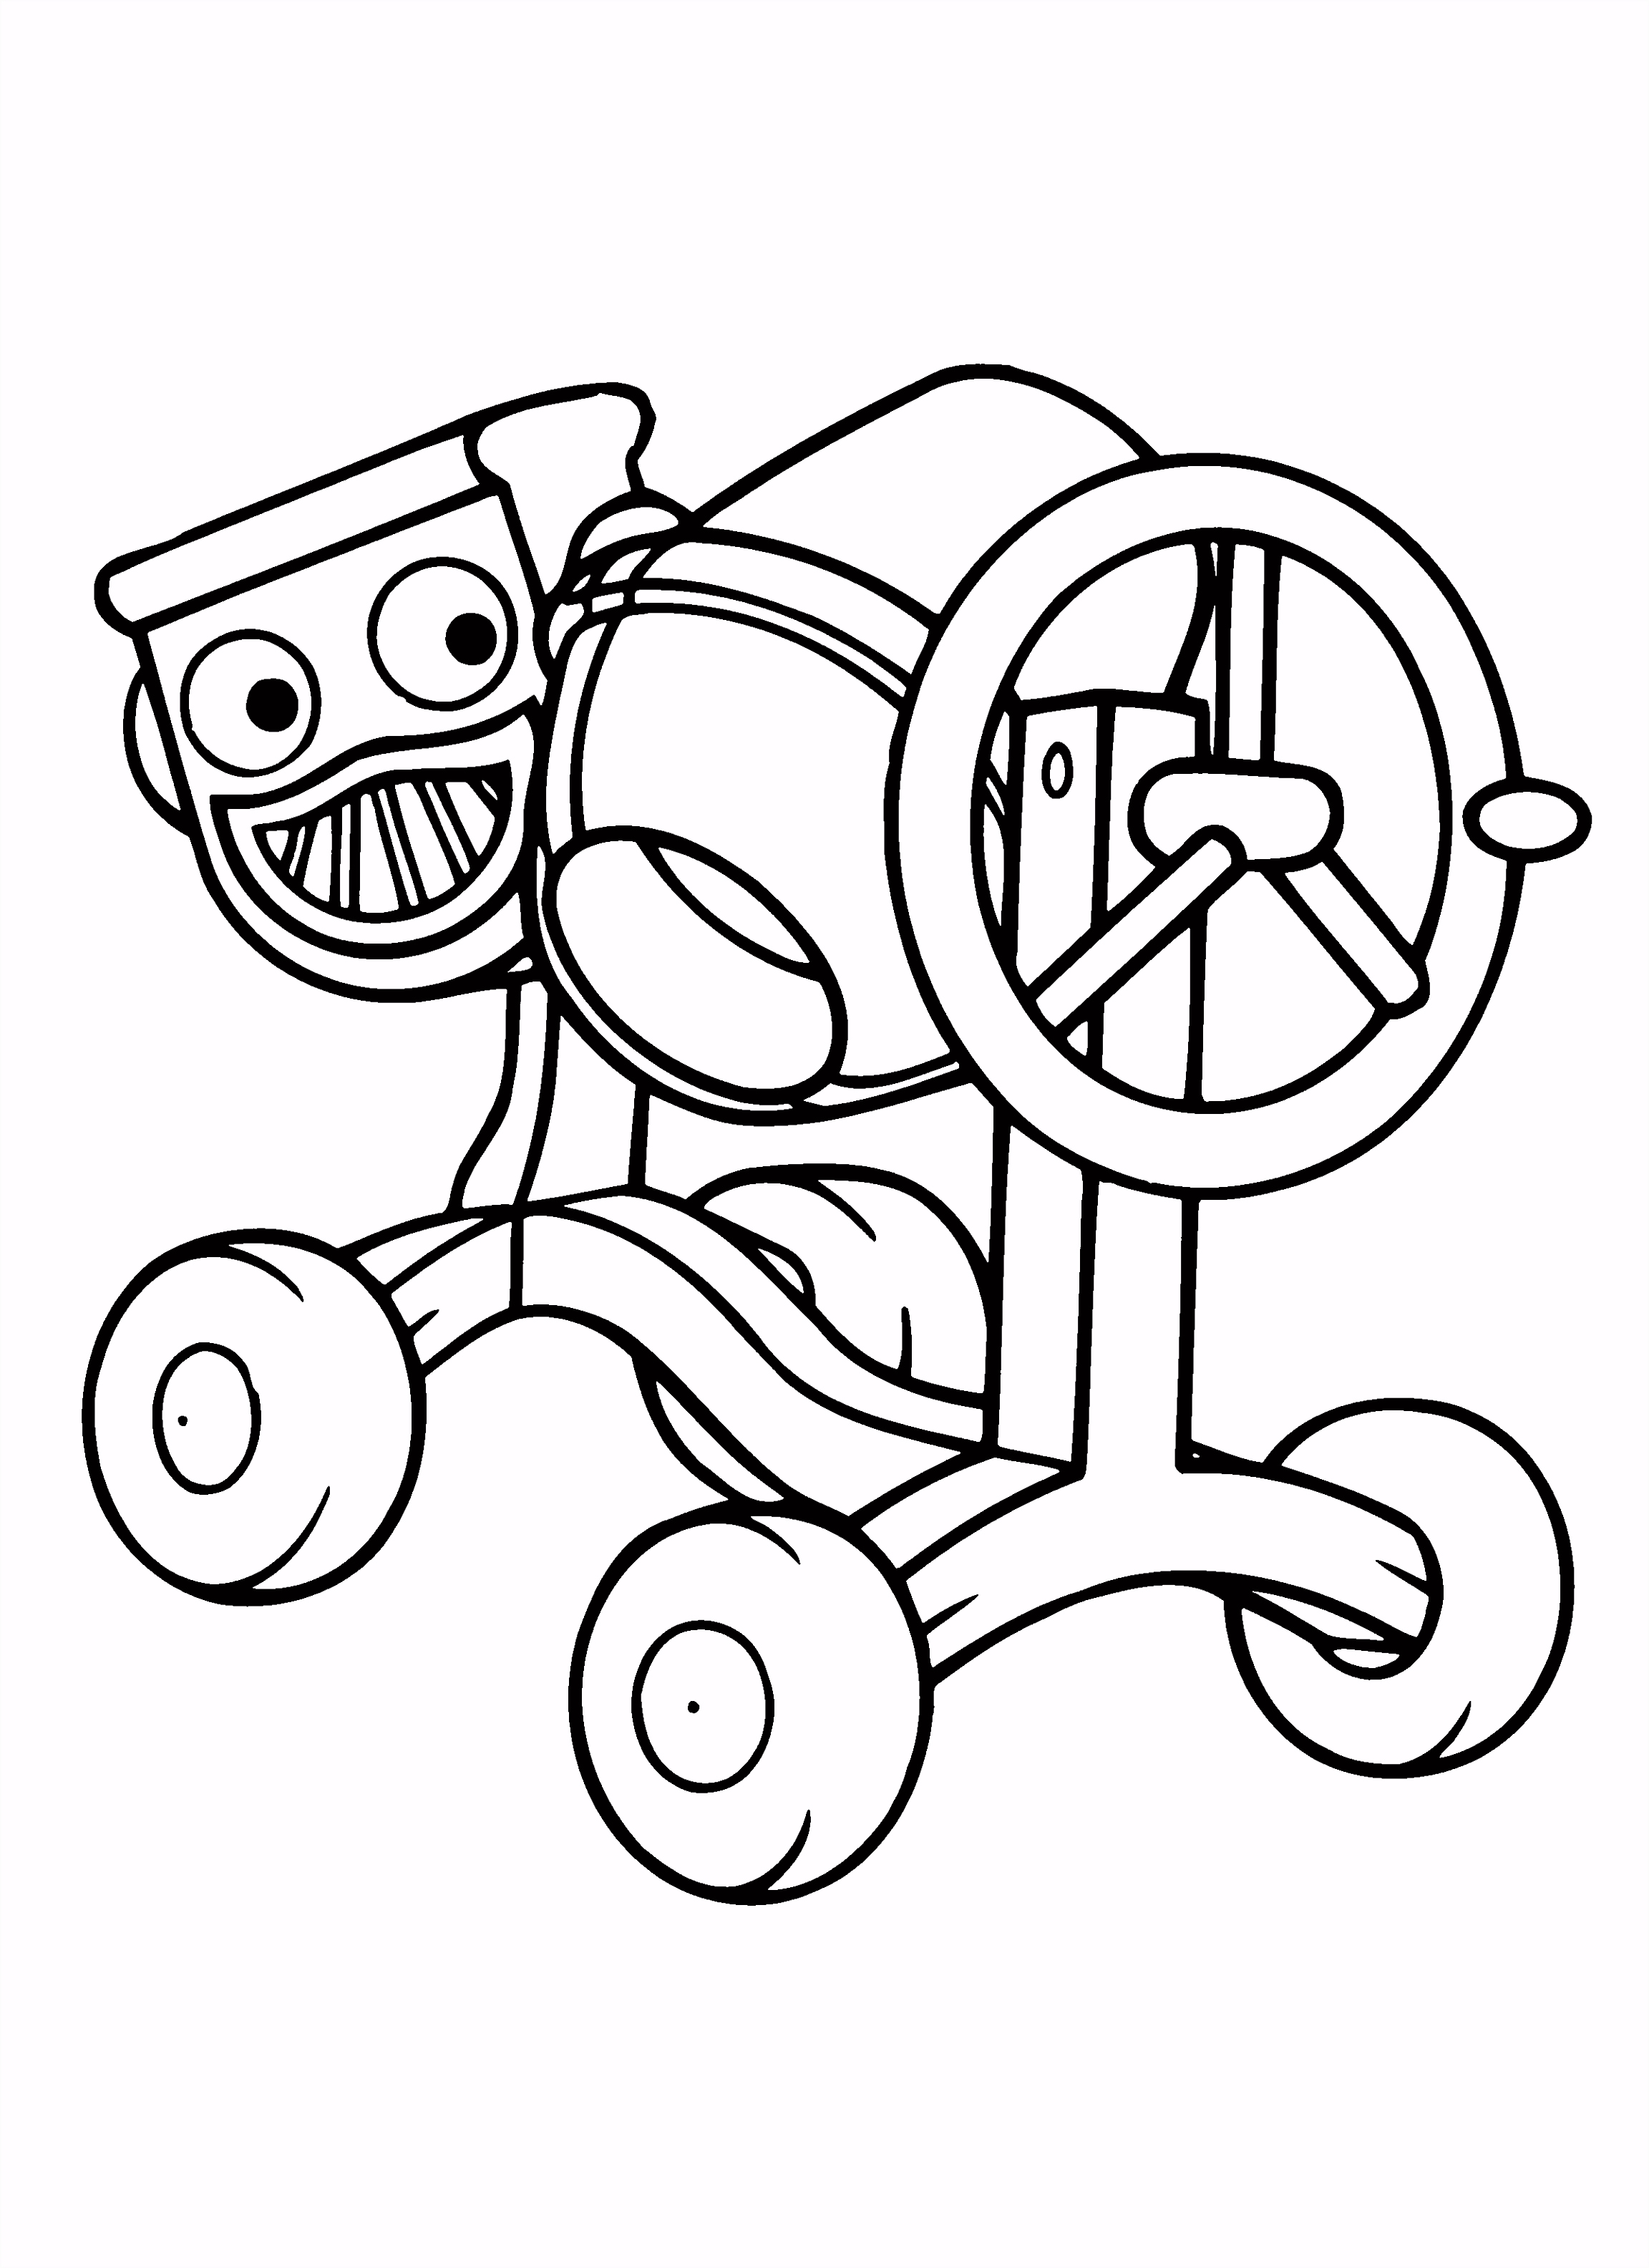 Bob the Builder Coloring Sheets Free Download